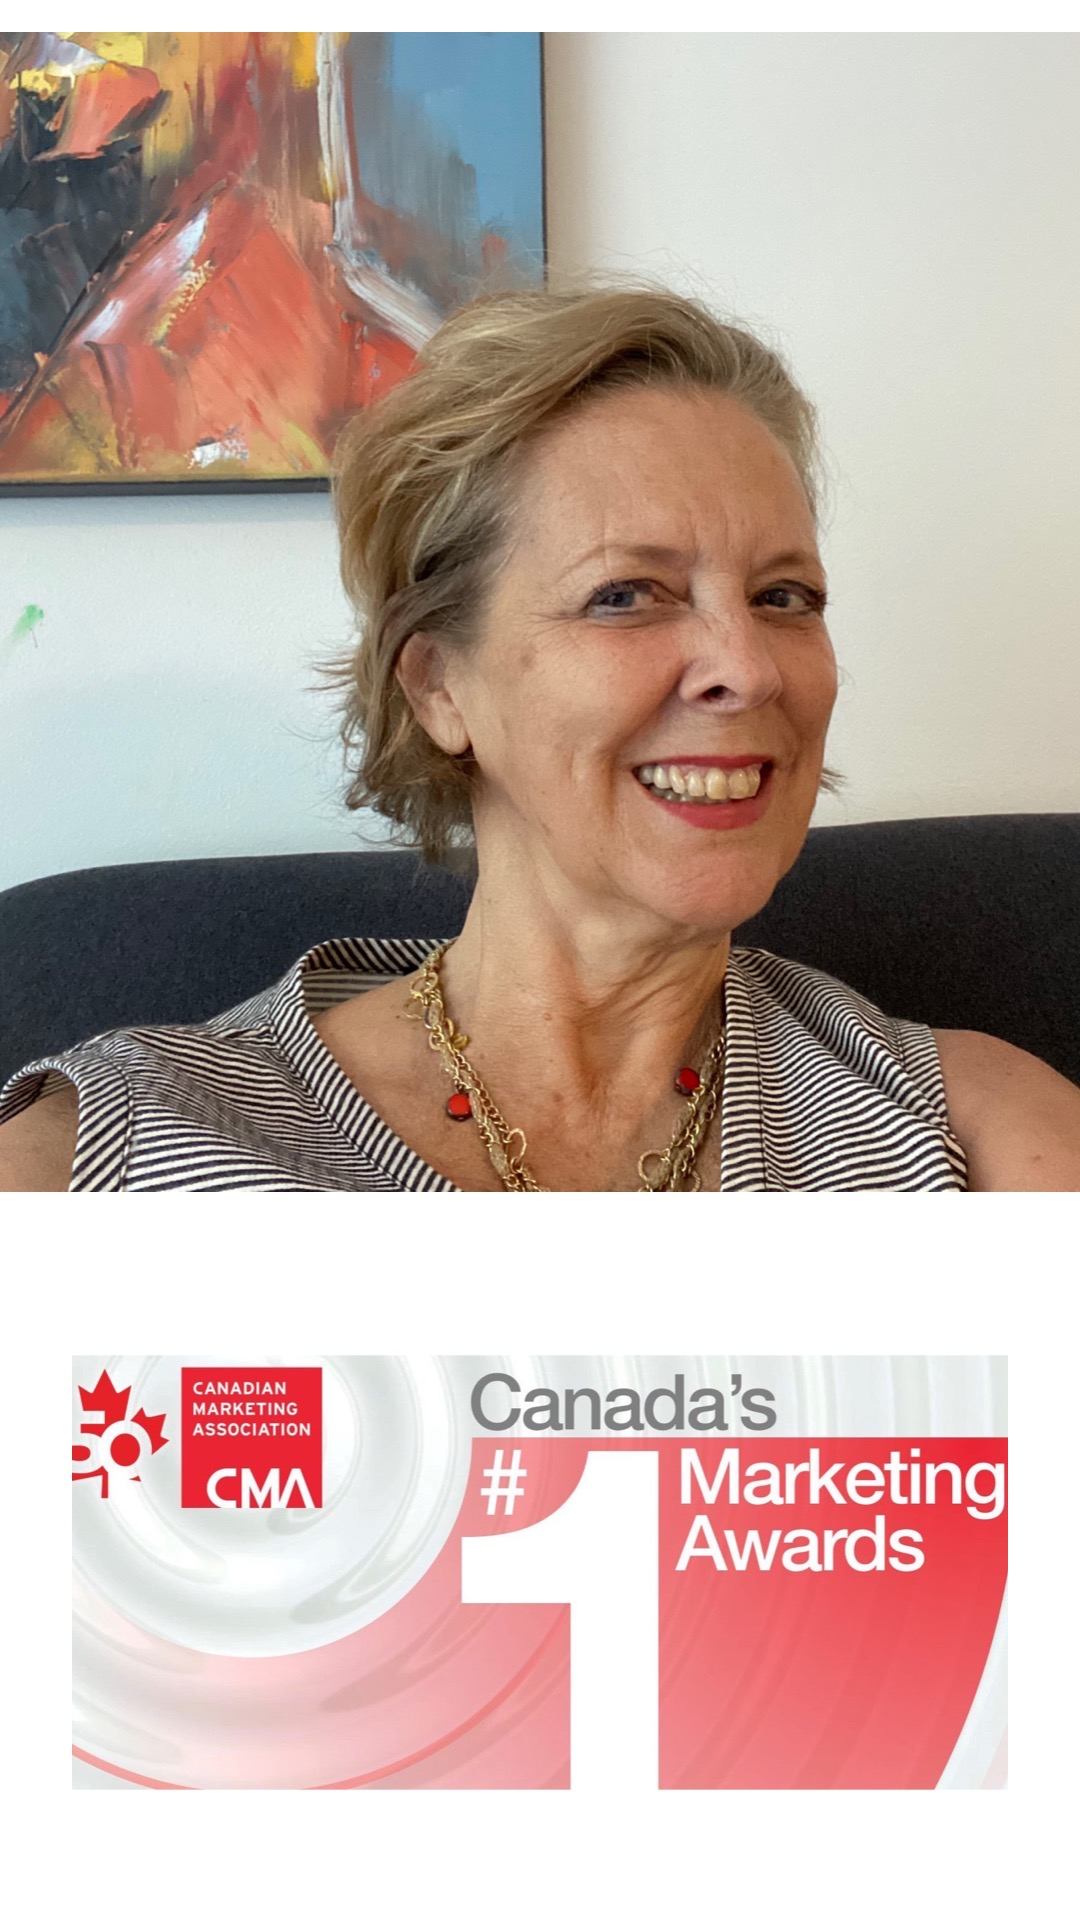 2020 CMA [Canadian Marketing Association] Awards – Judging Commences Today